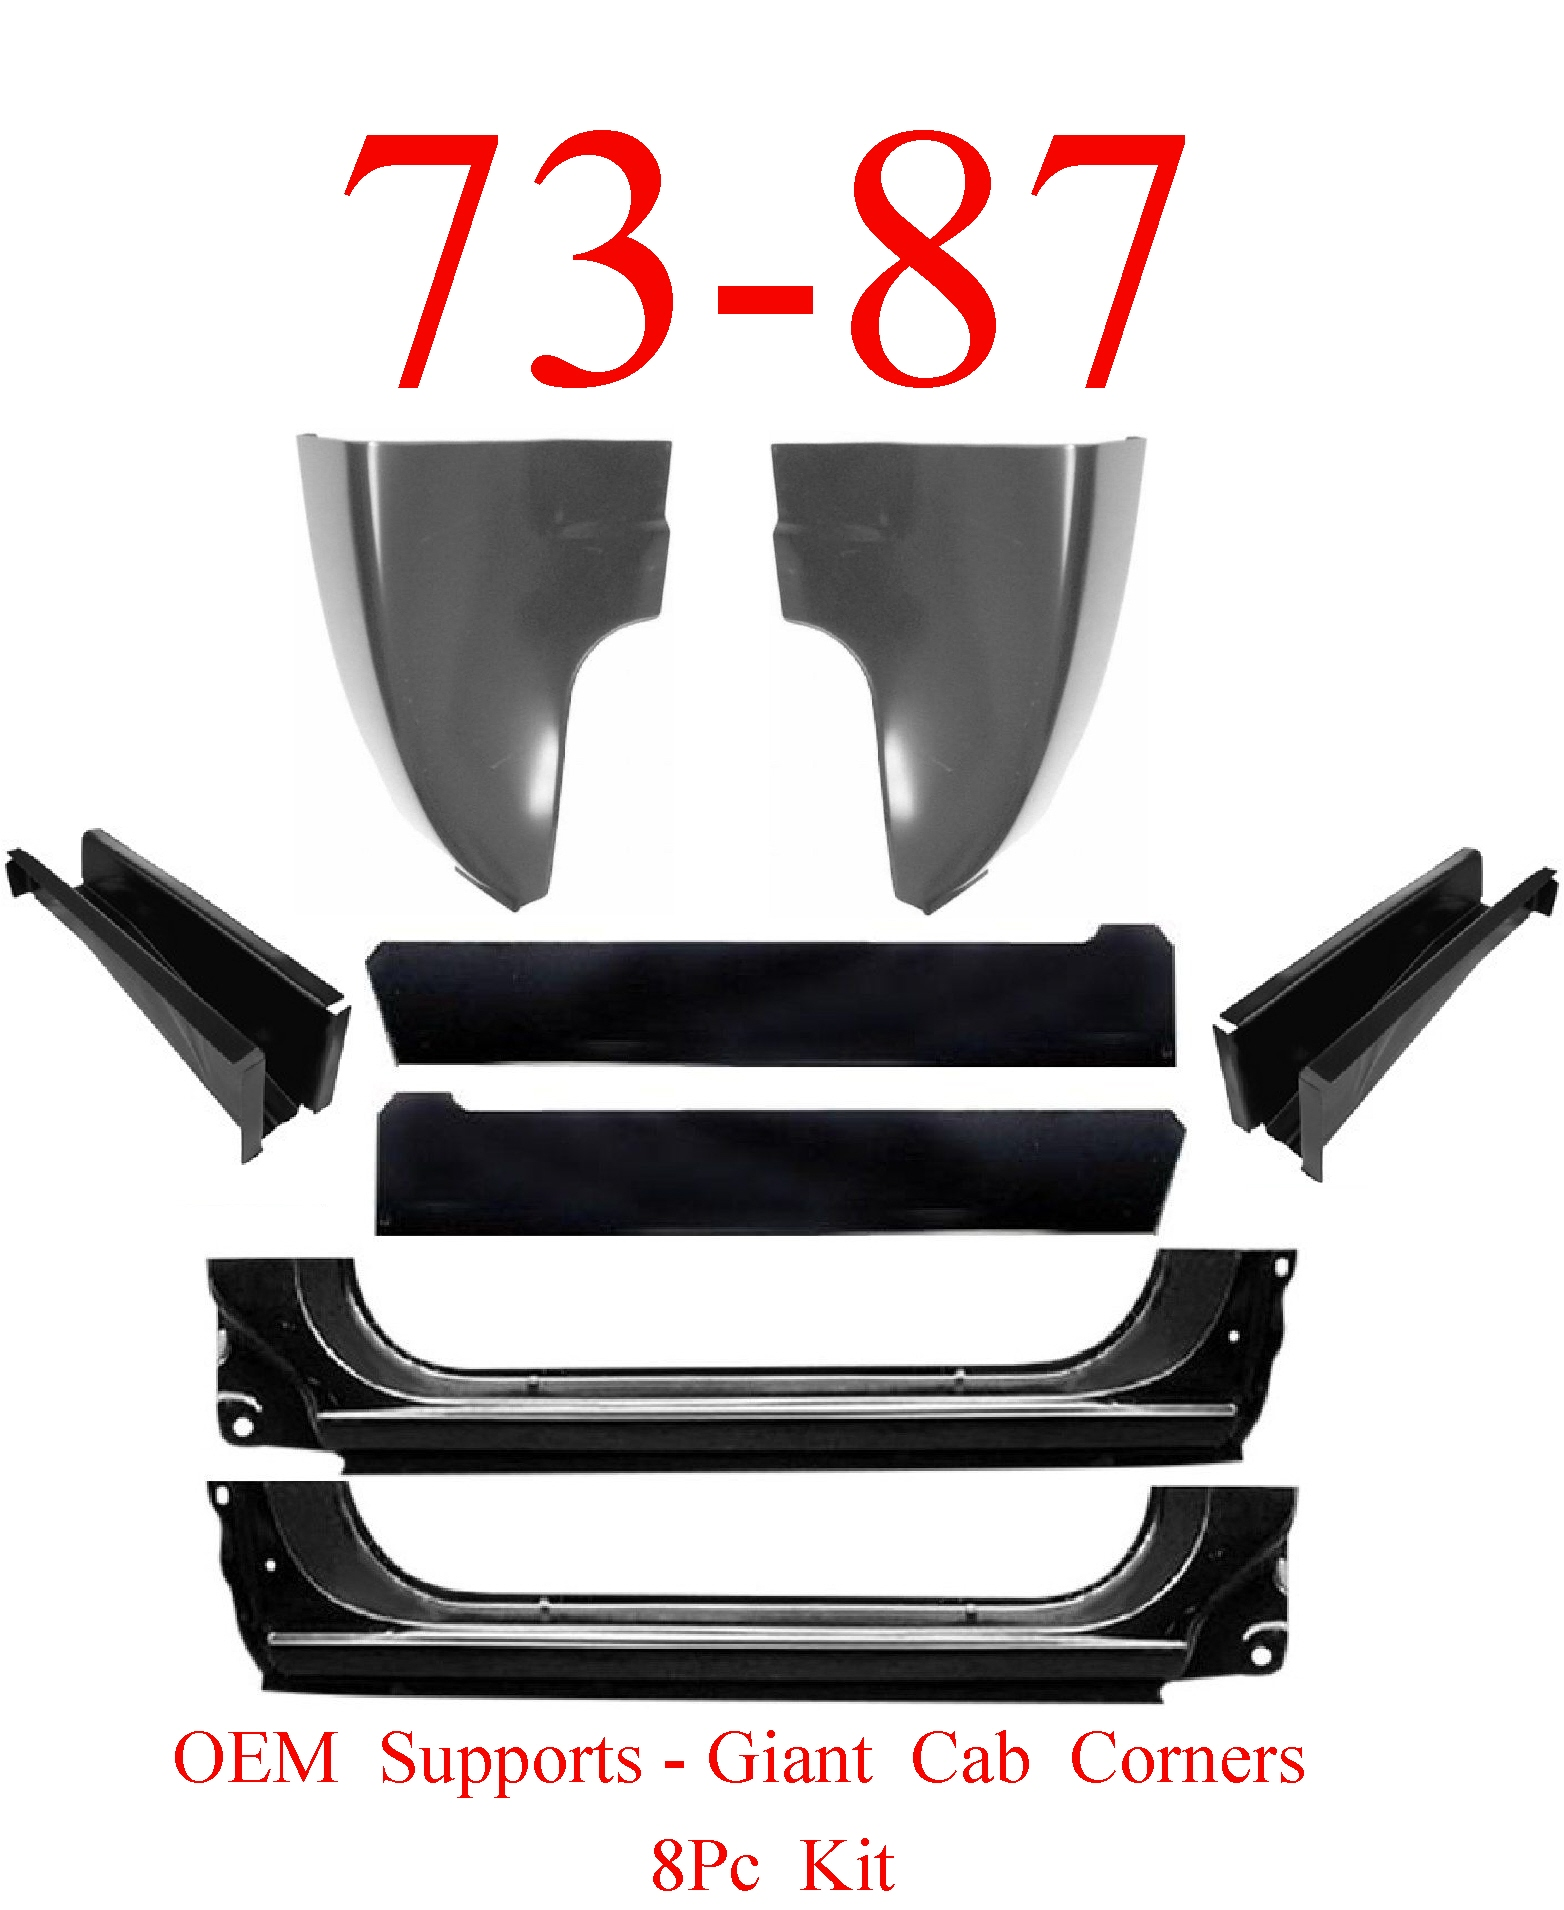 73-87 OEM Chevy 8Pc Cab Repair Kit